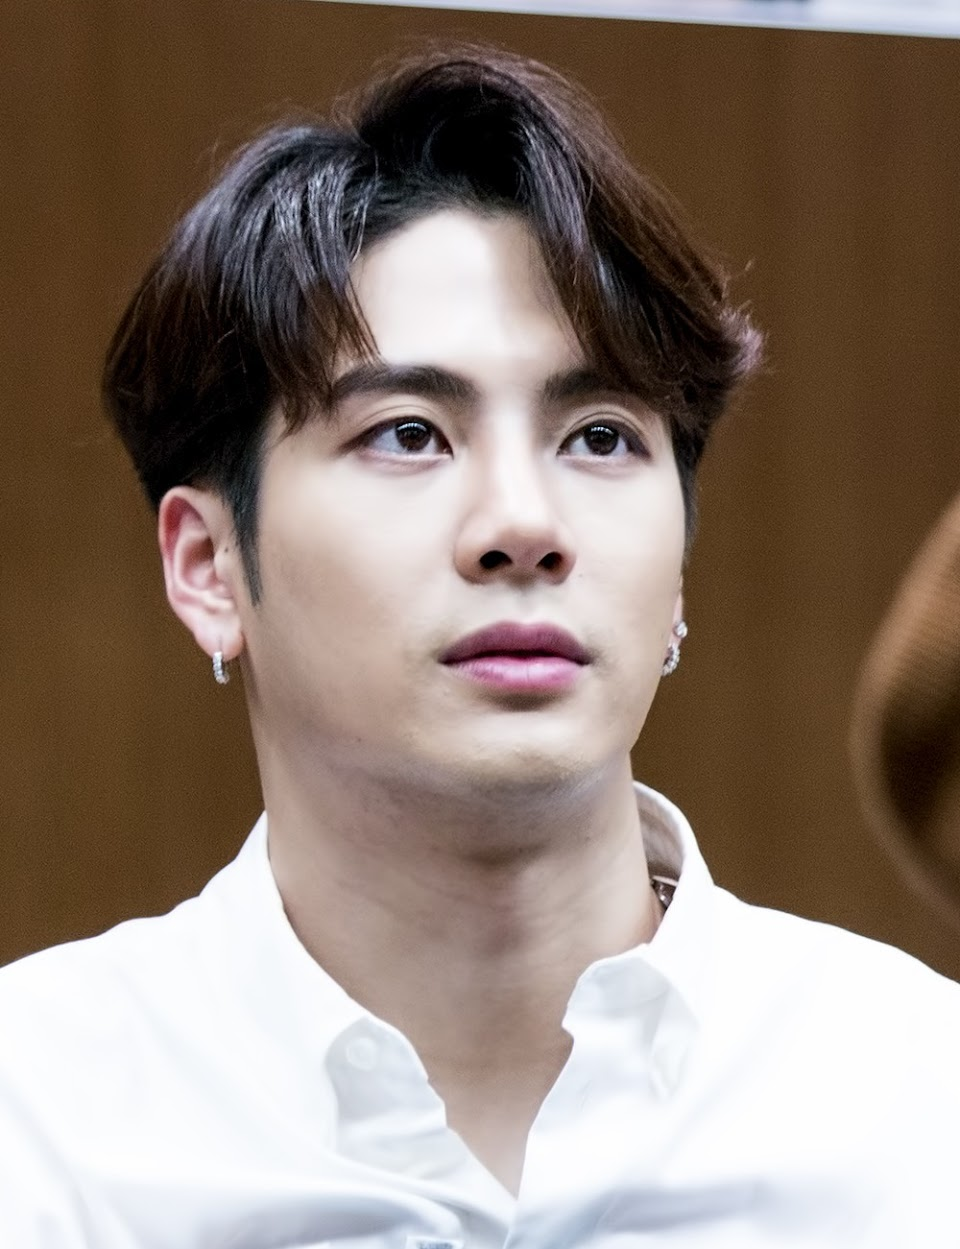 Jackson_Wang_at_a_fansigning_event_in_Yongsan,_1_April_2018_01